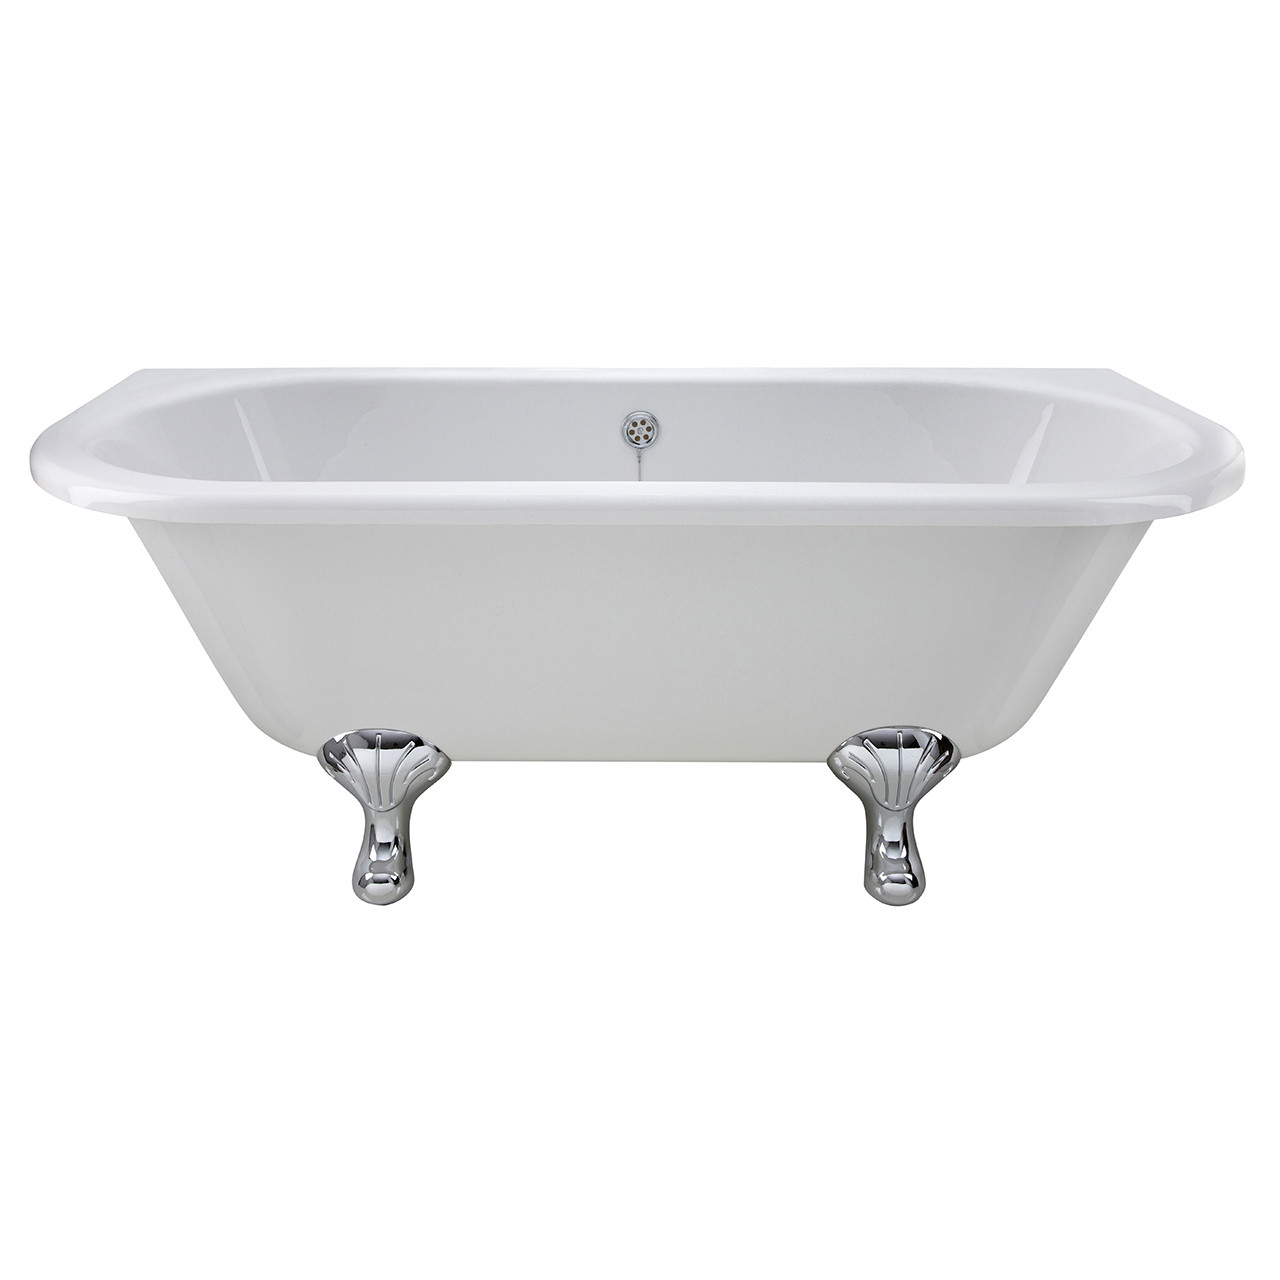 Premier White Back to Wall 1700 Freestanding Bath with Corbel Legs - RE1701T